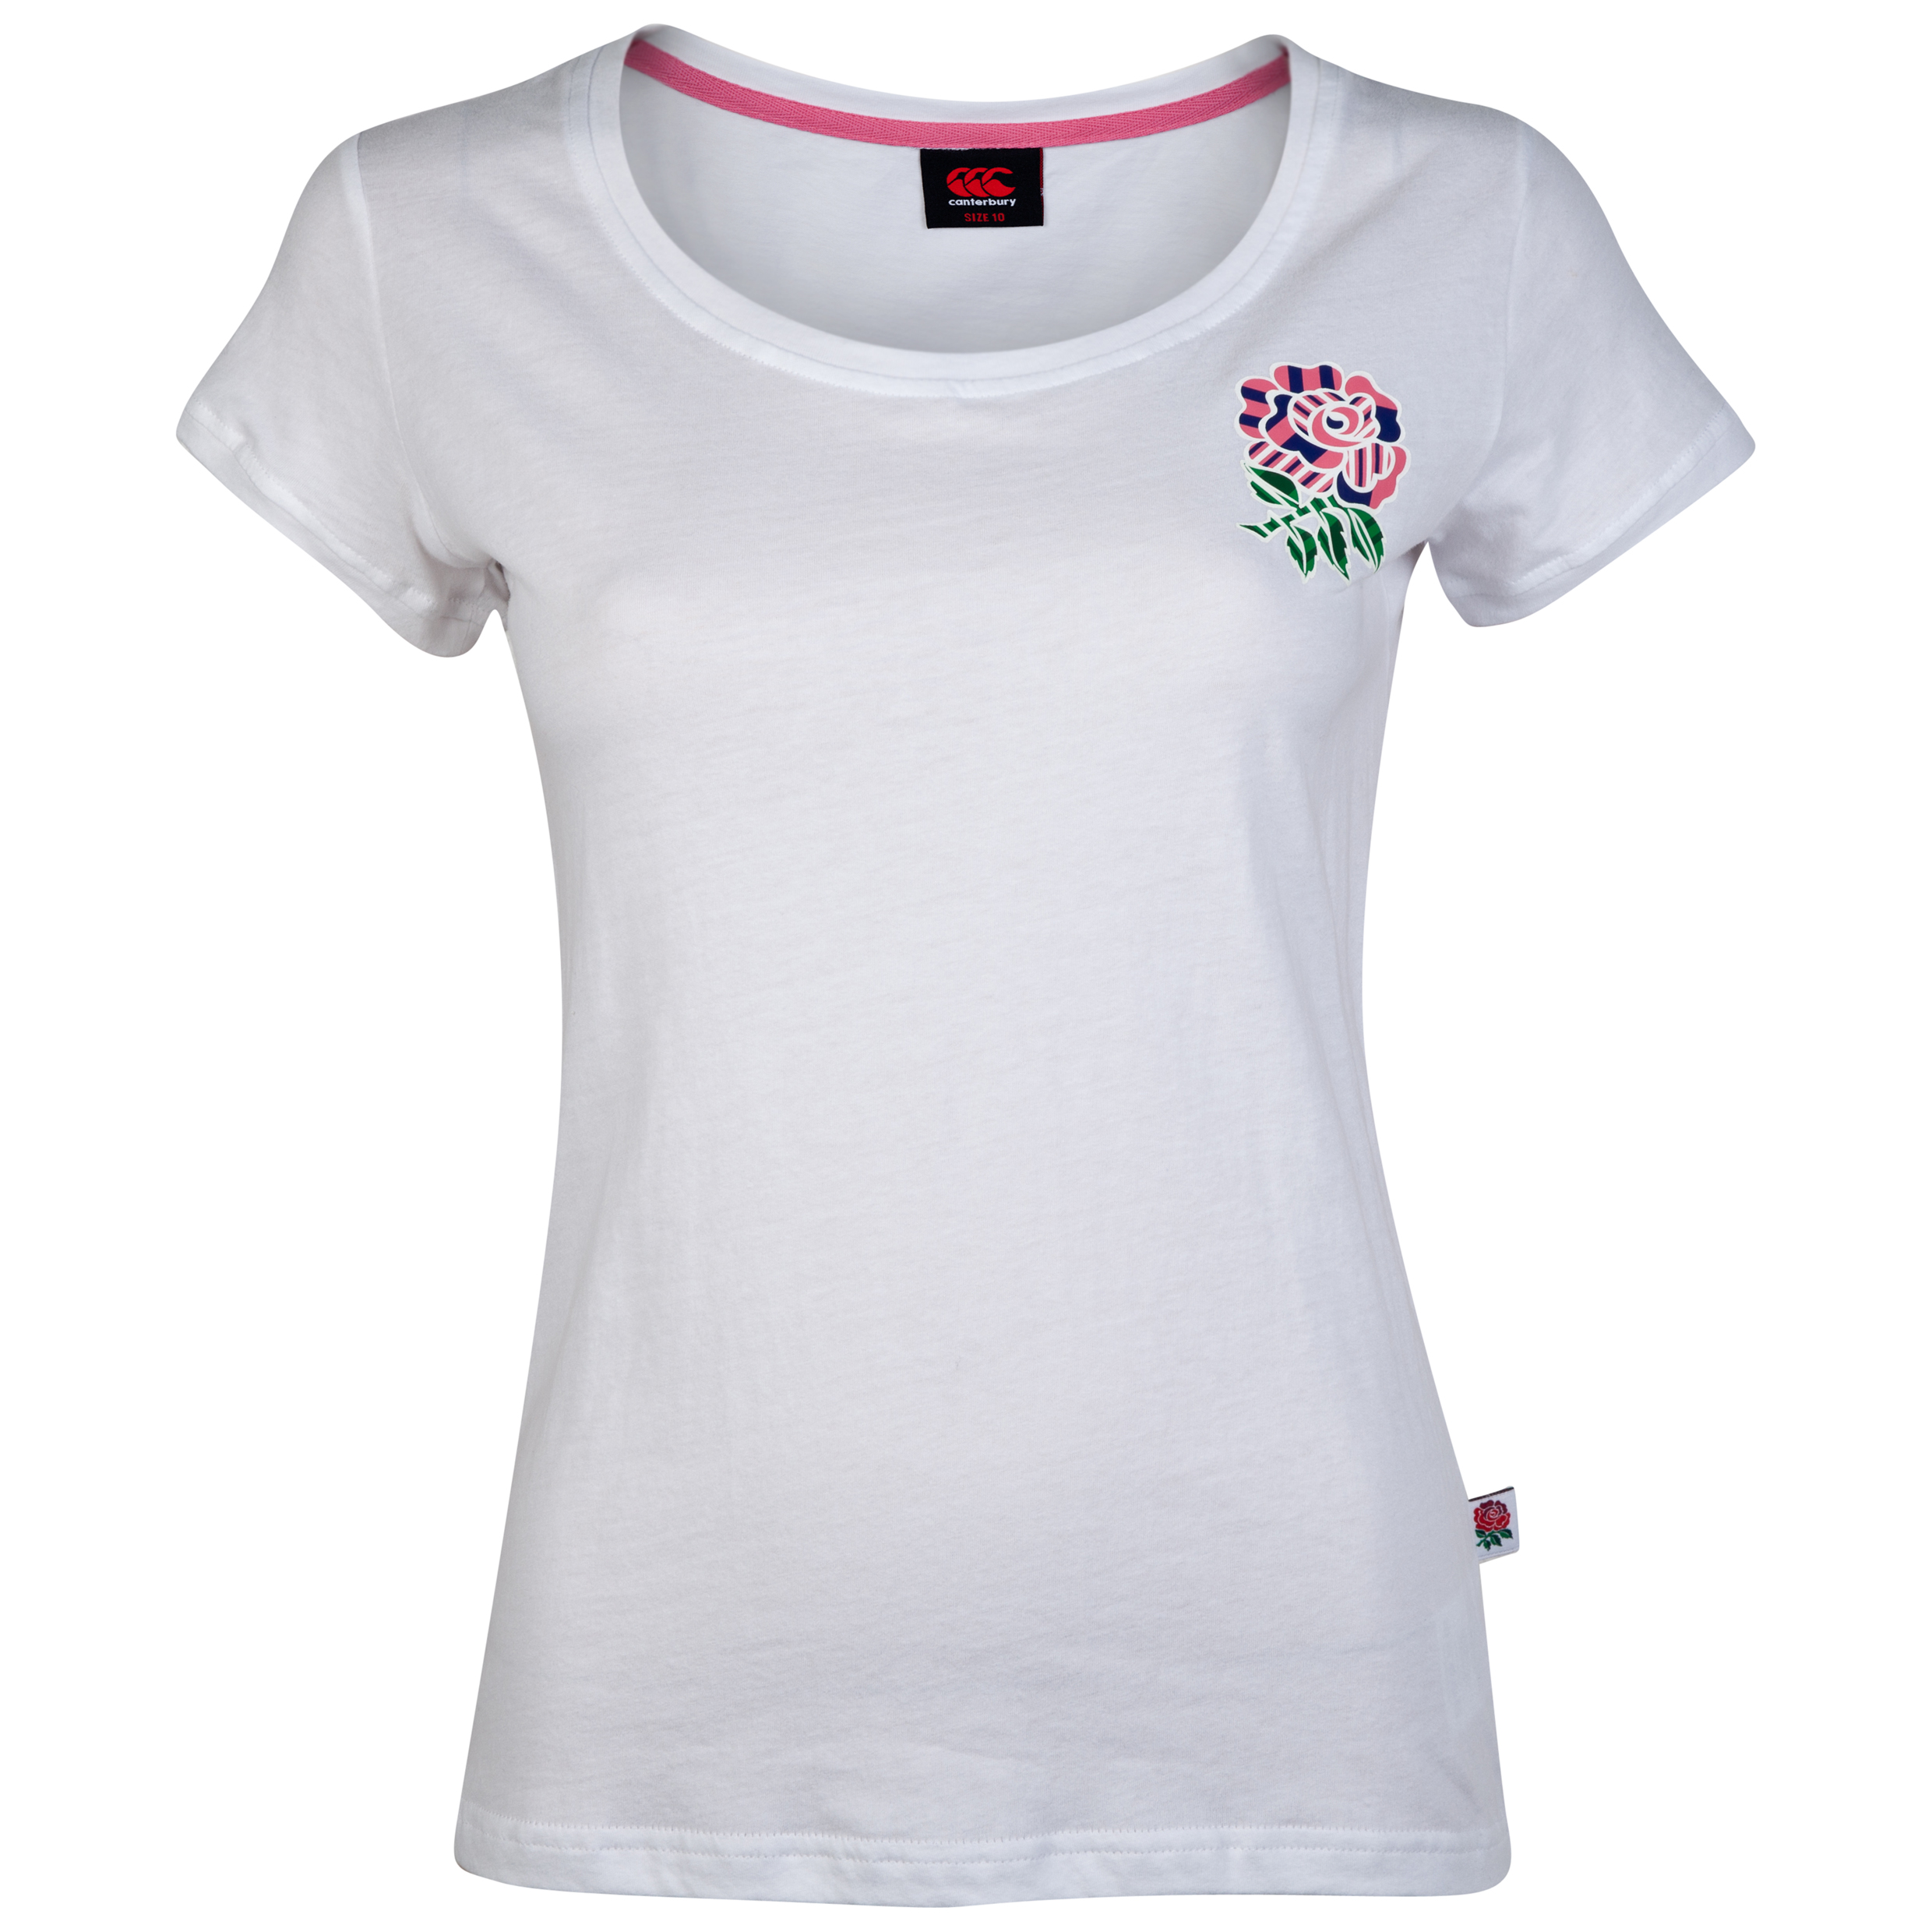 England Uglies T-Shirt - Womens